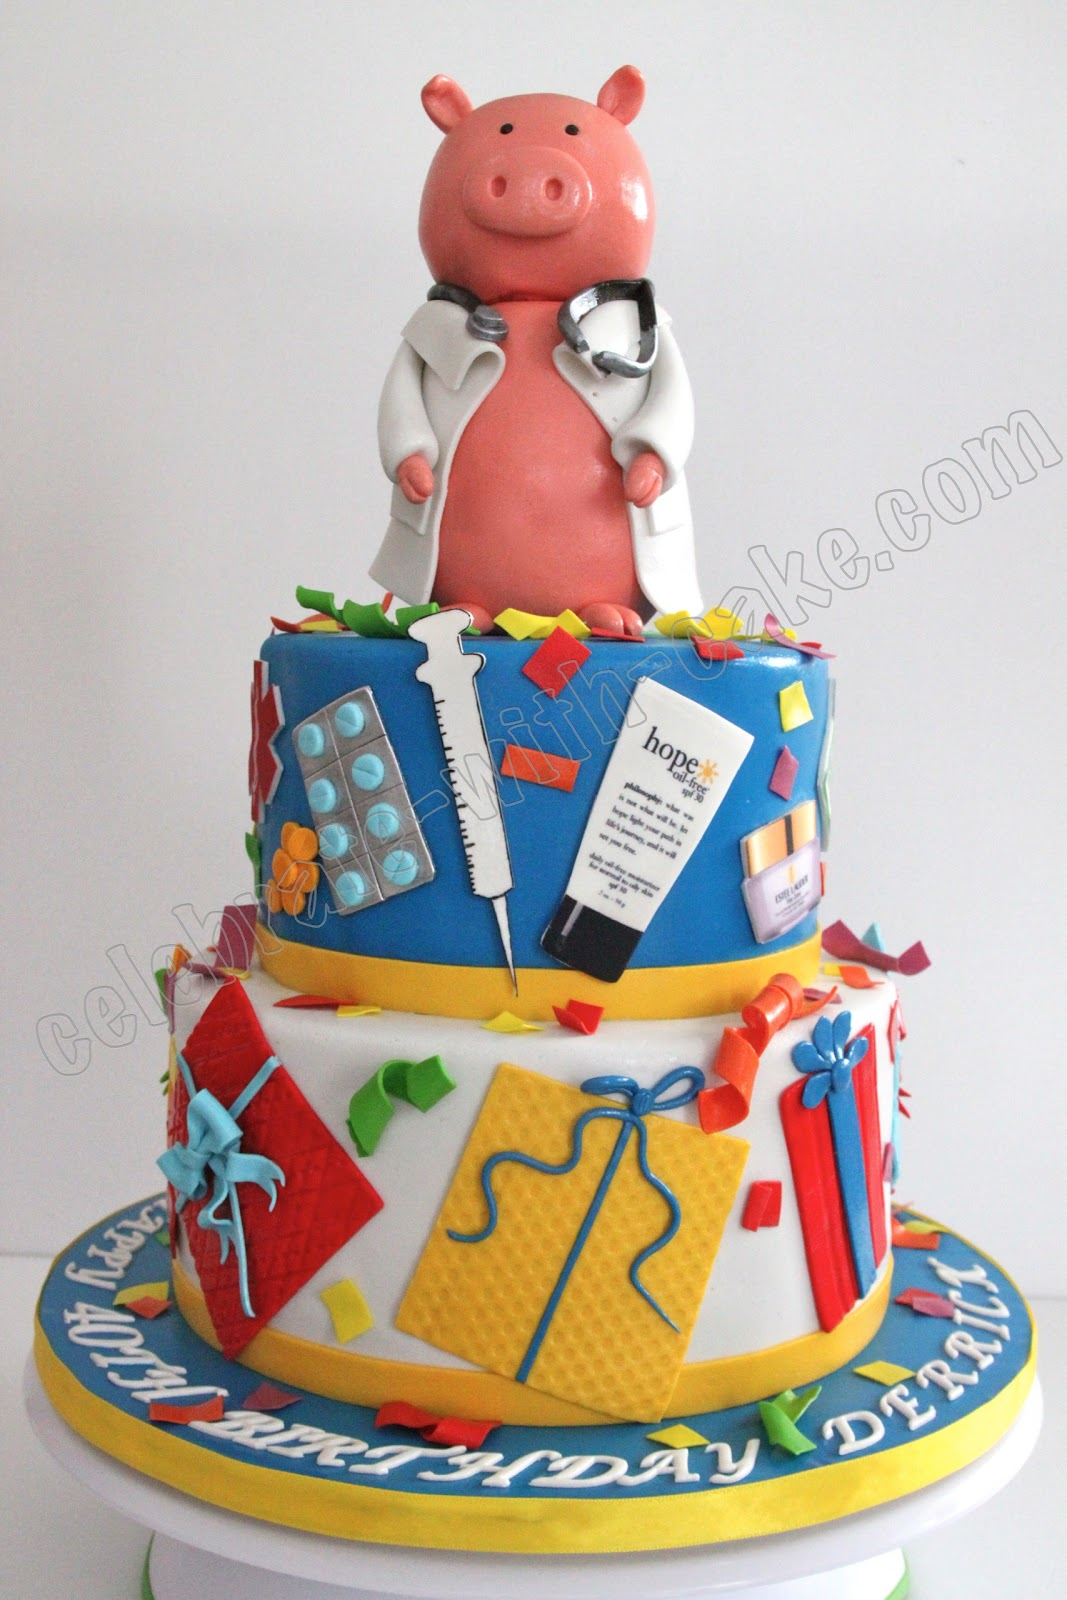 Celebrate With Cake Pig Doctor Themed Cake